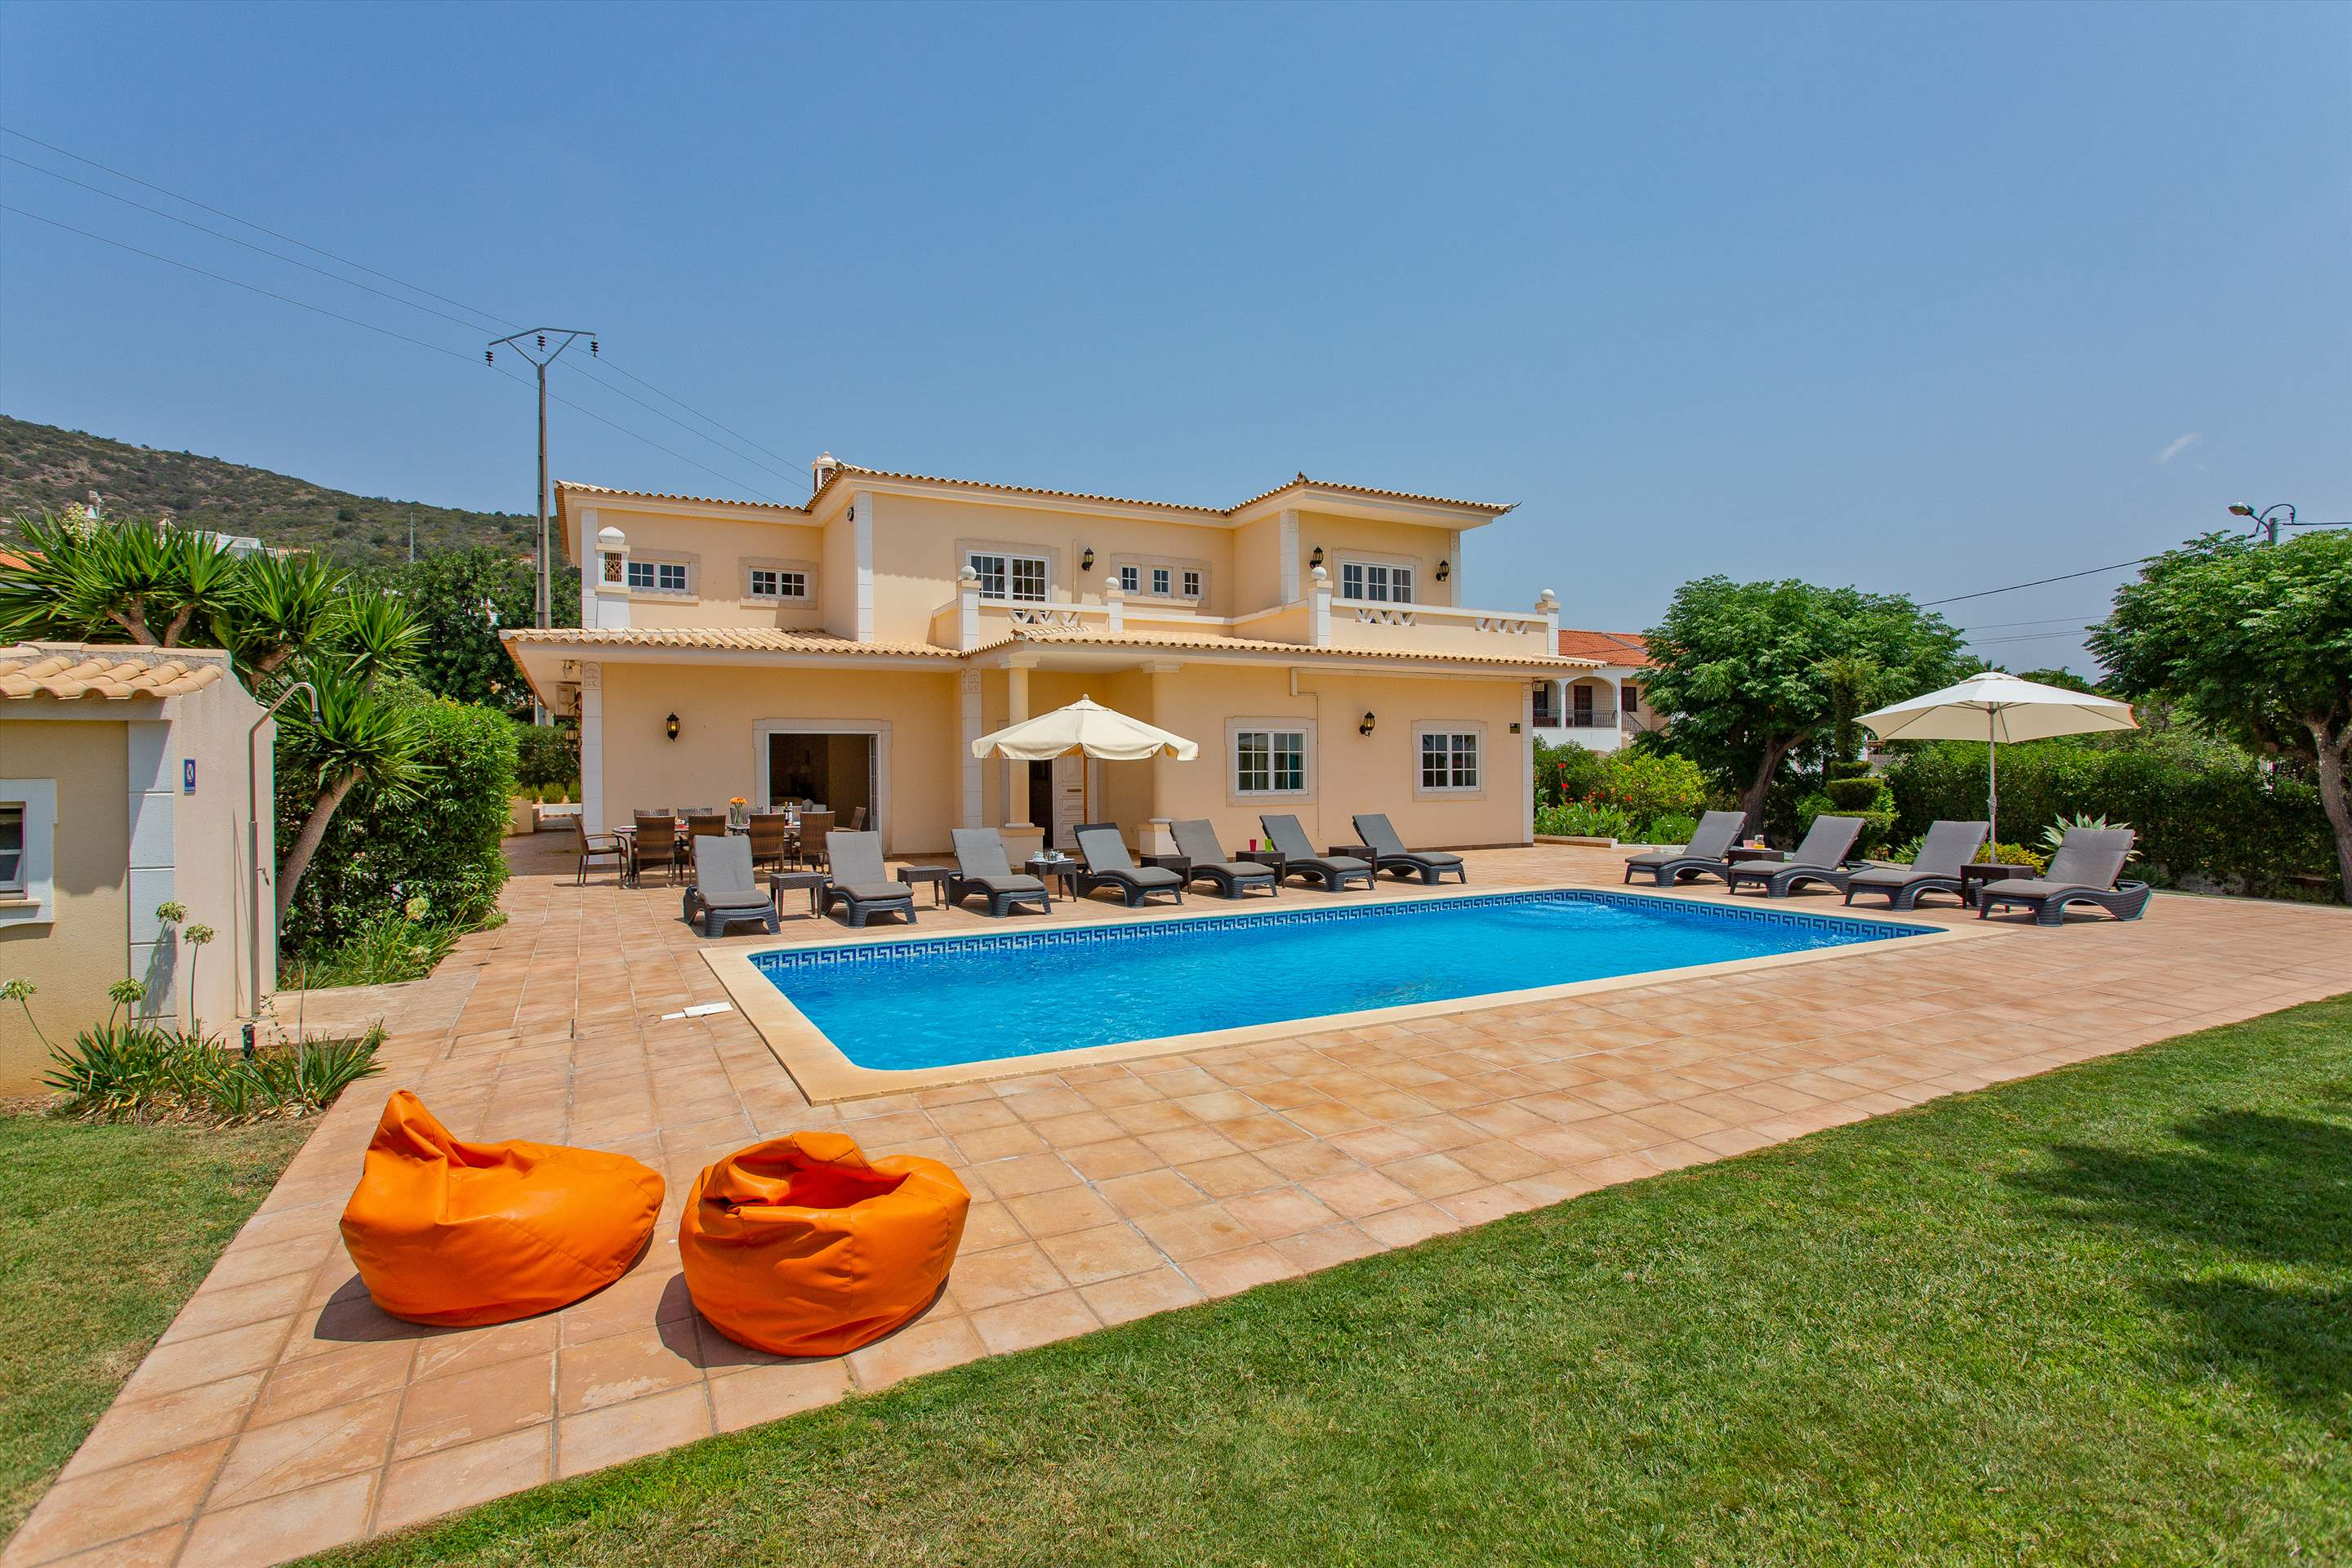 Quinta do Bruno, Eight Bedroom Rate including annexes, 8 bedroom villa in Vilamoura Area, Algarve Photo #1